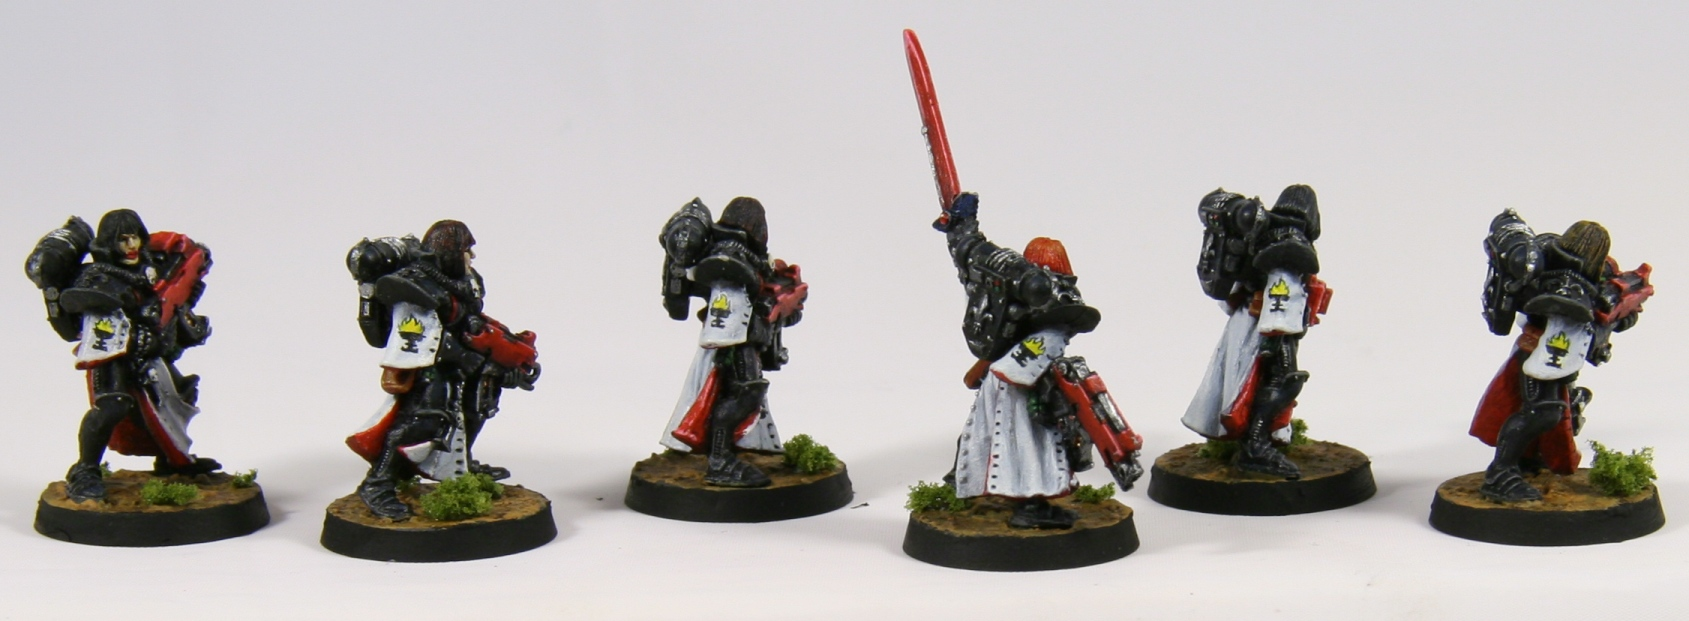 battle sister squard by - photo #26